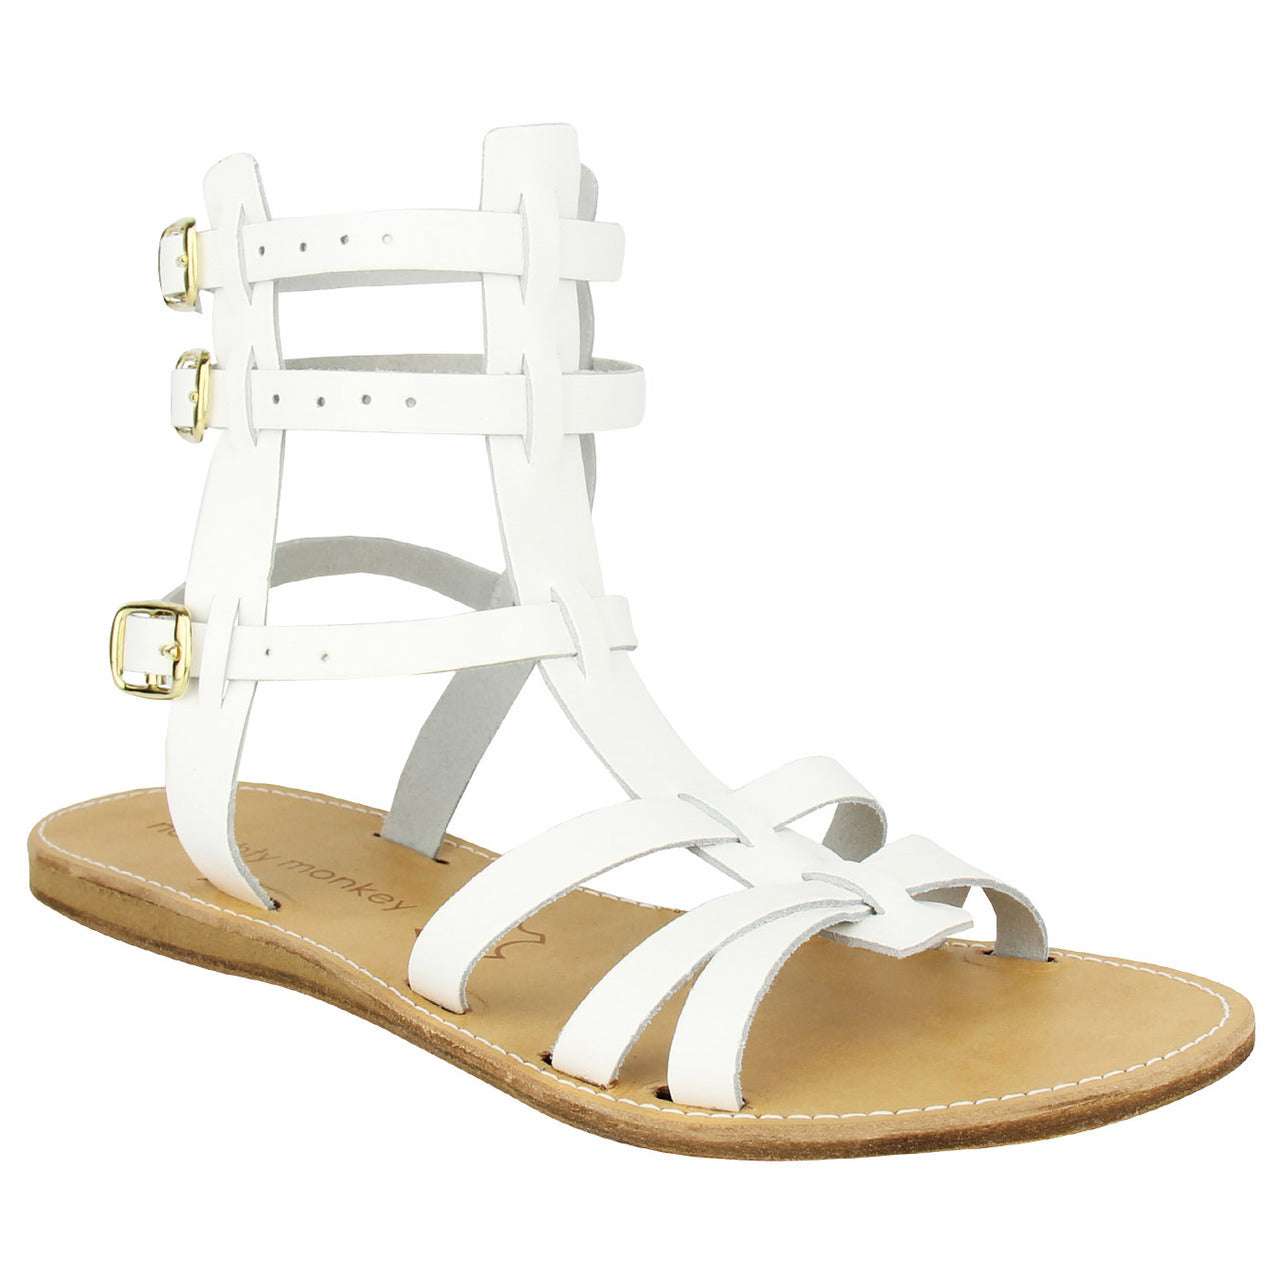 naughty_monkey_sandal_Argos - White_sale